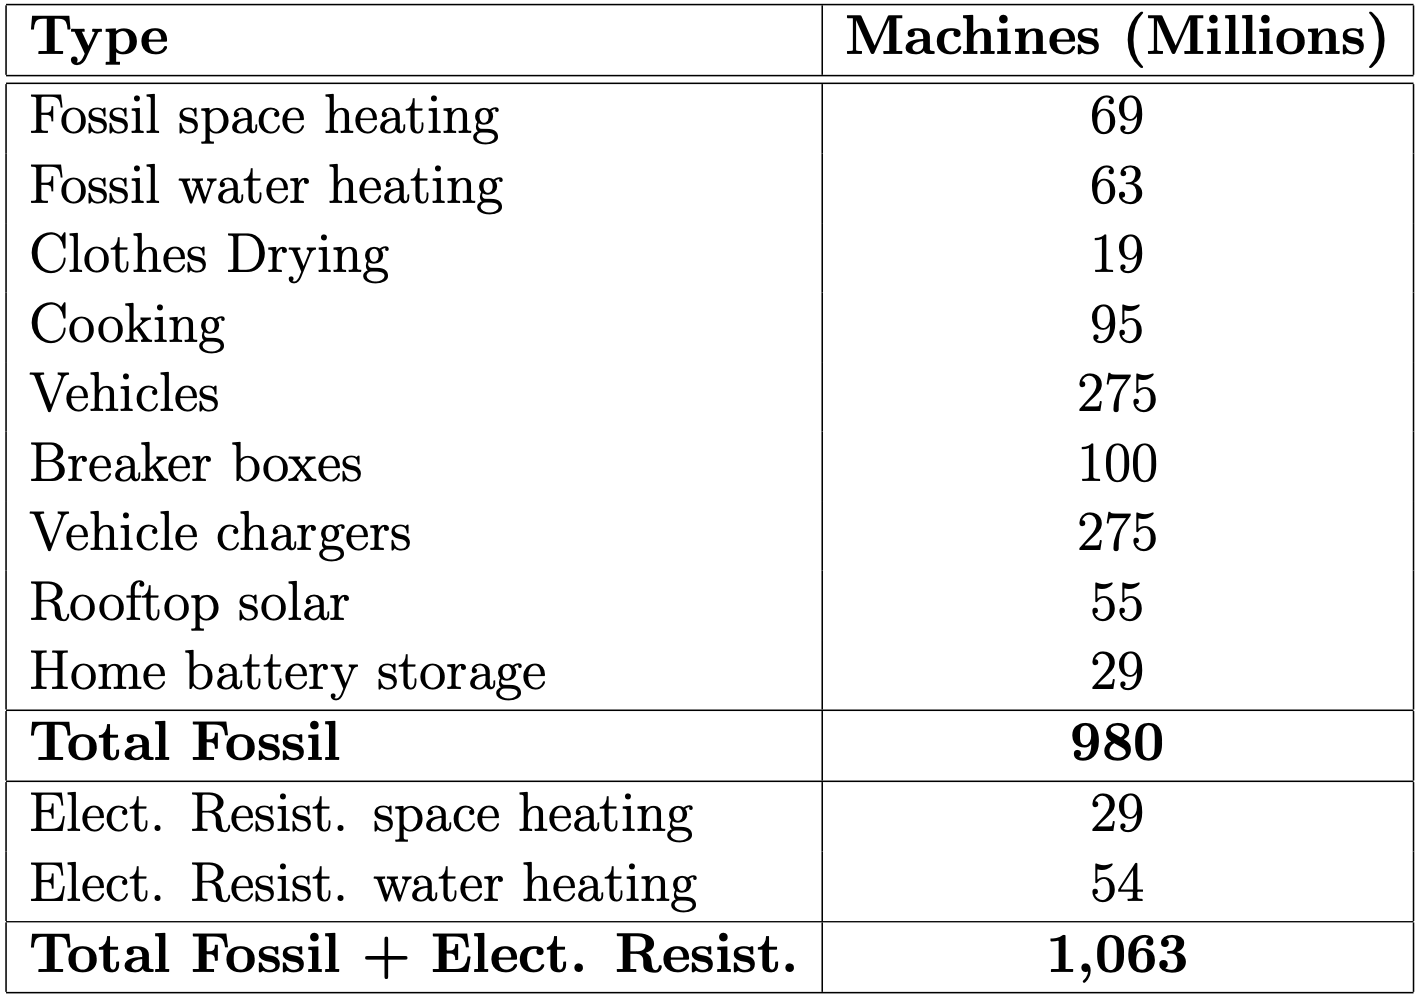 Table with a break down of the one billion machines that need to be electrified.  69M fossil space heating, 63M fossil water heating, 19M clothes drying, 95M cooking, 275M vehicles, 100M breaker boxes, 275M vehicle chargers, 55M rooftop solar, 29M home battery storage, 29M electrical resistance space heating, 54M electrical resistant water heating.